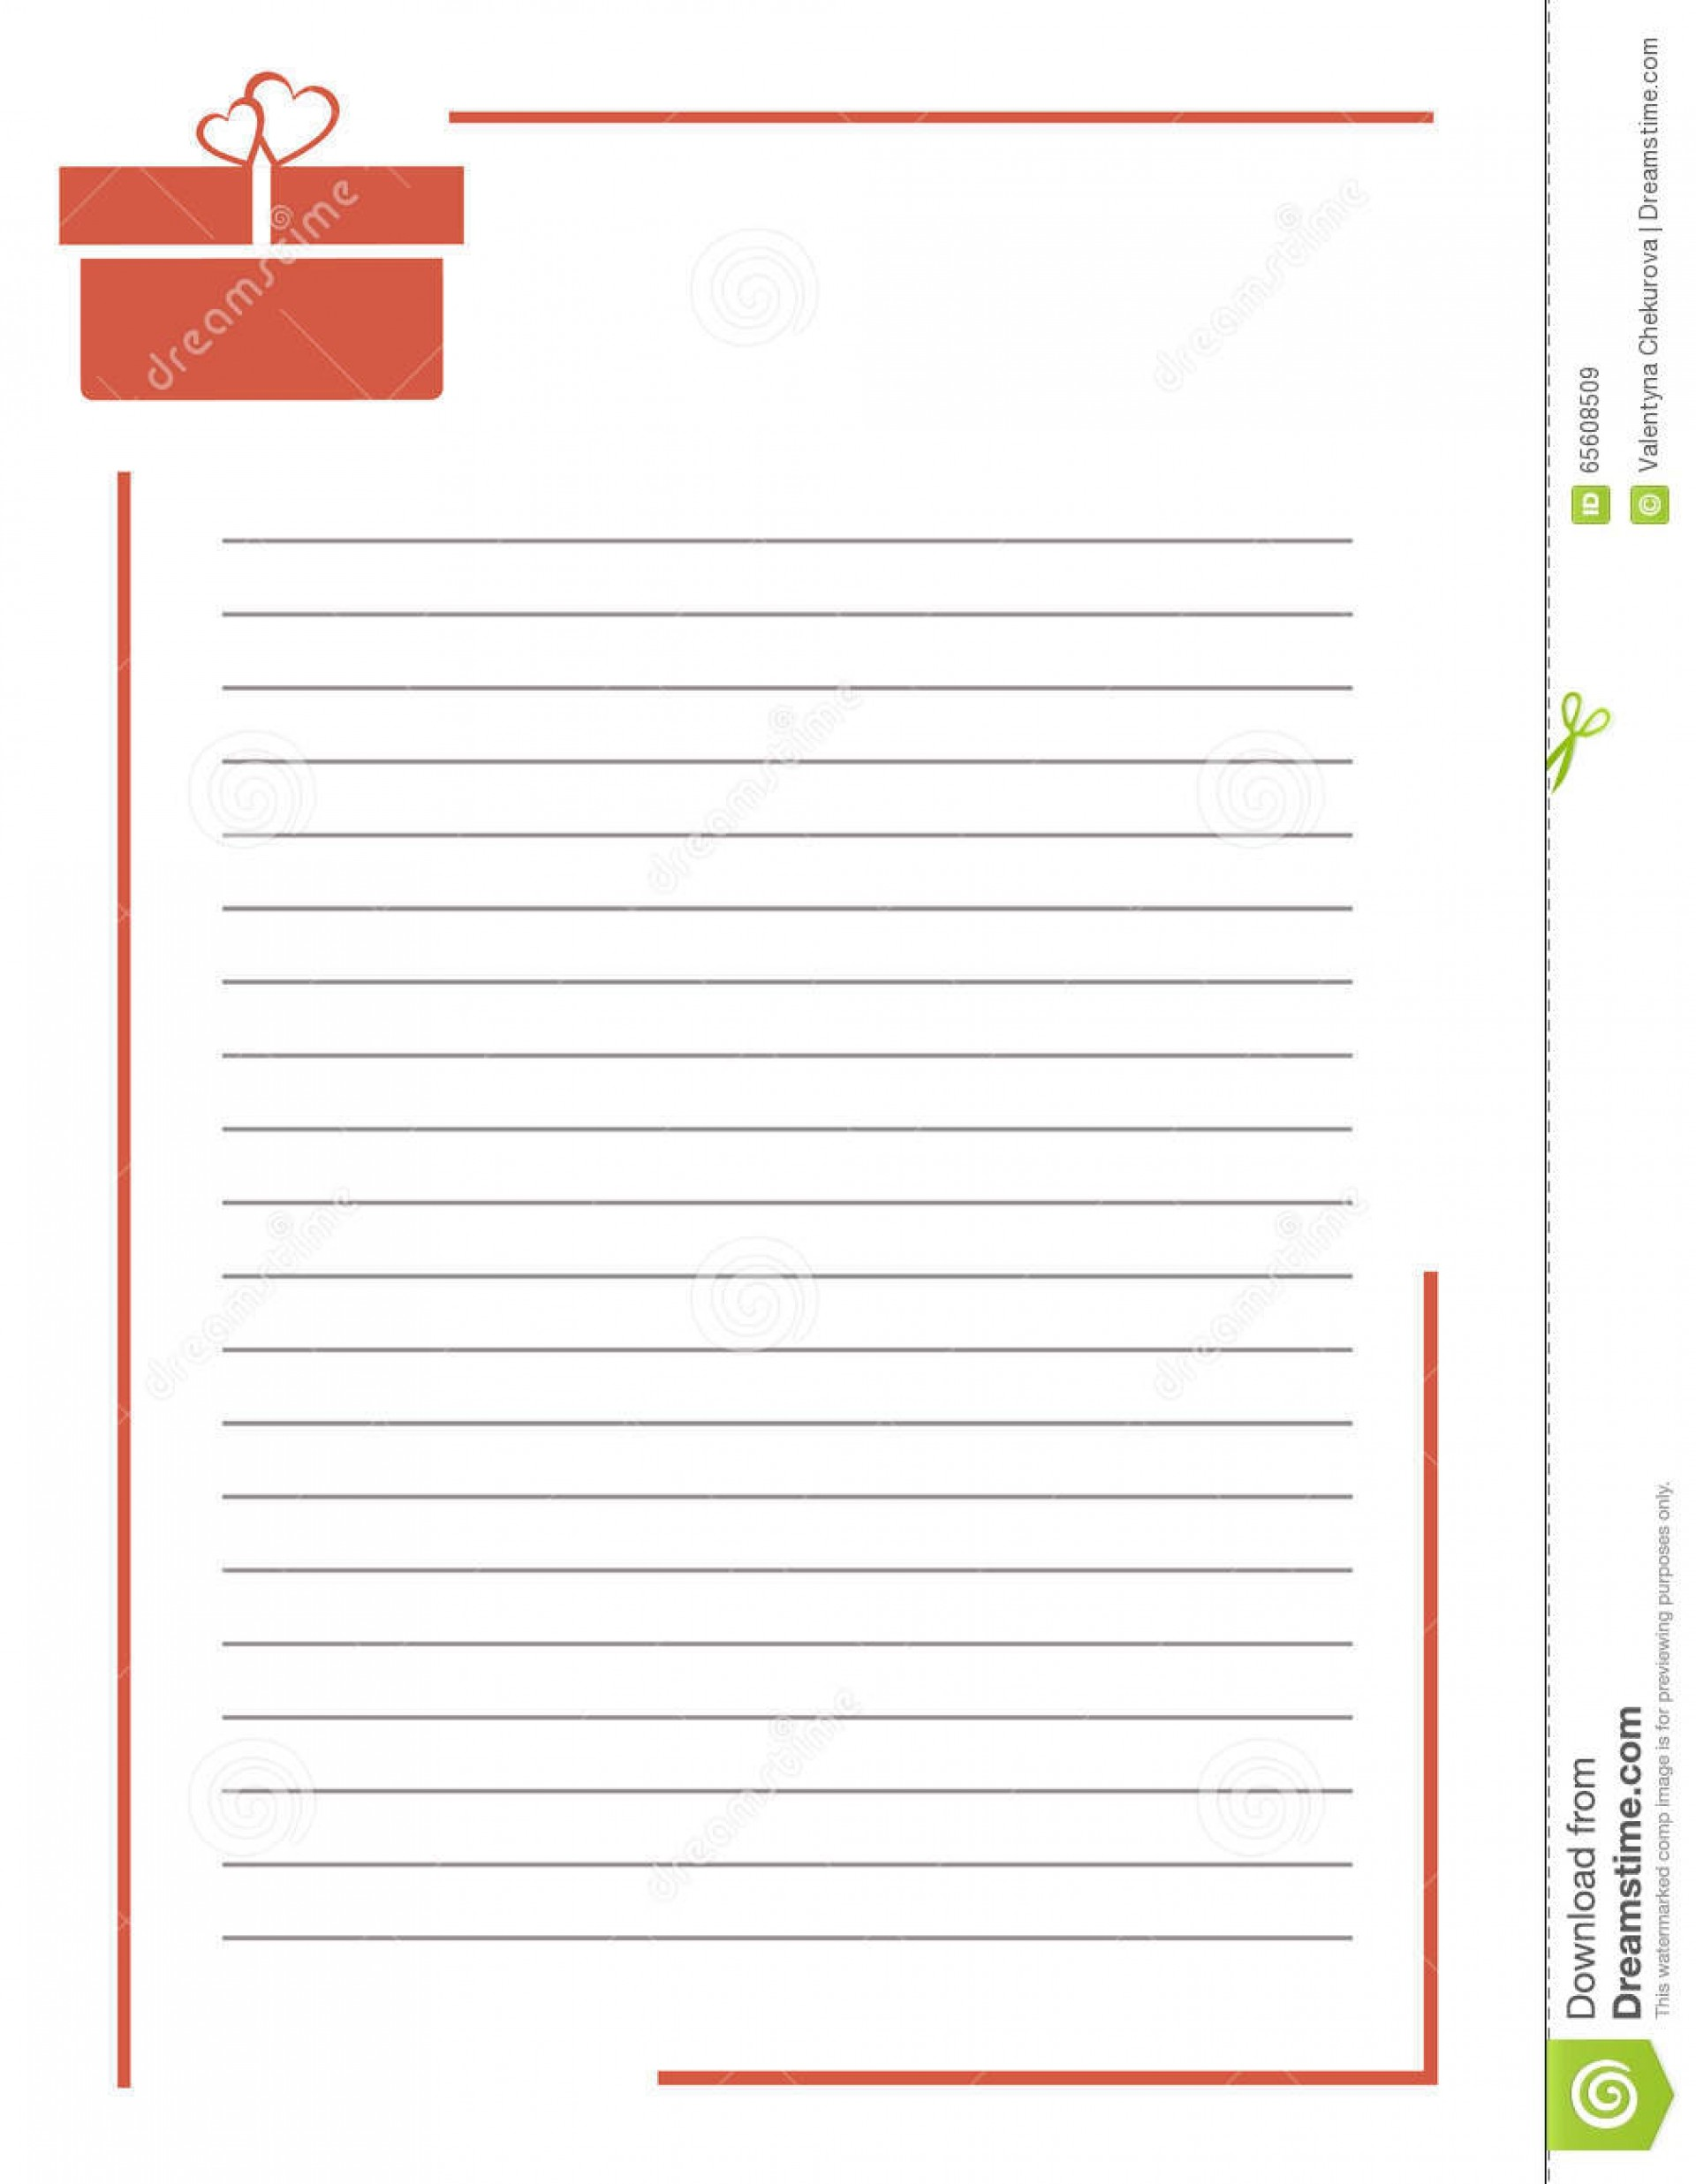 011 Note Card Maker For Research Paper Vector Blank Letter Greeting White Form Red Gift Box Lines Border Format Size Marvelous 1920